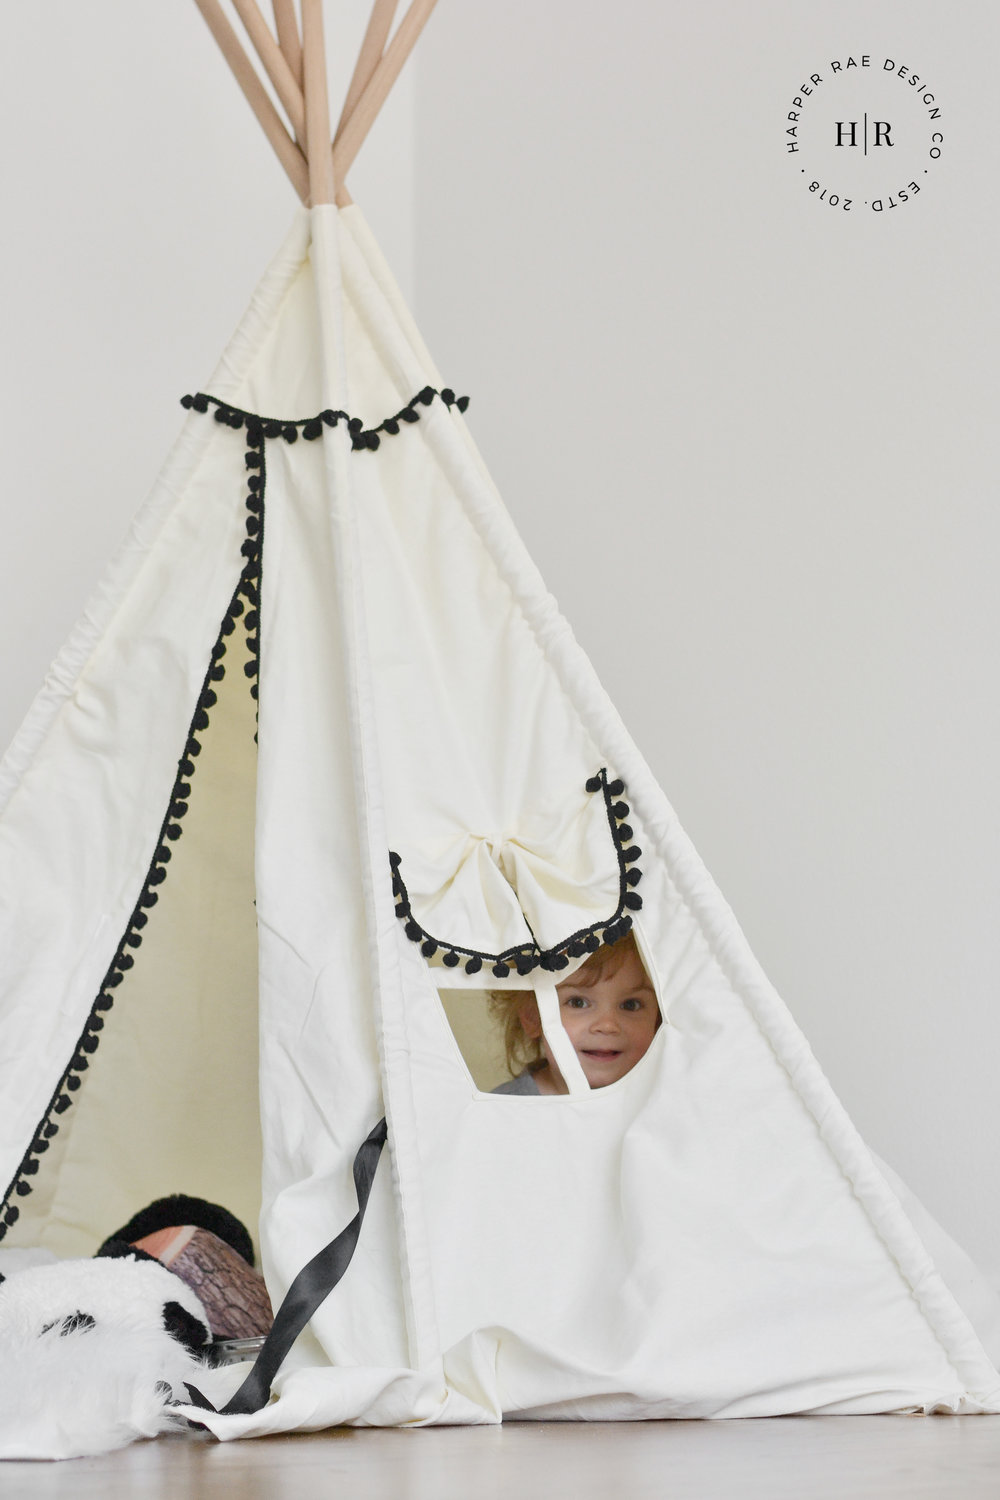 zoe inside teepee with logo.jpg